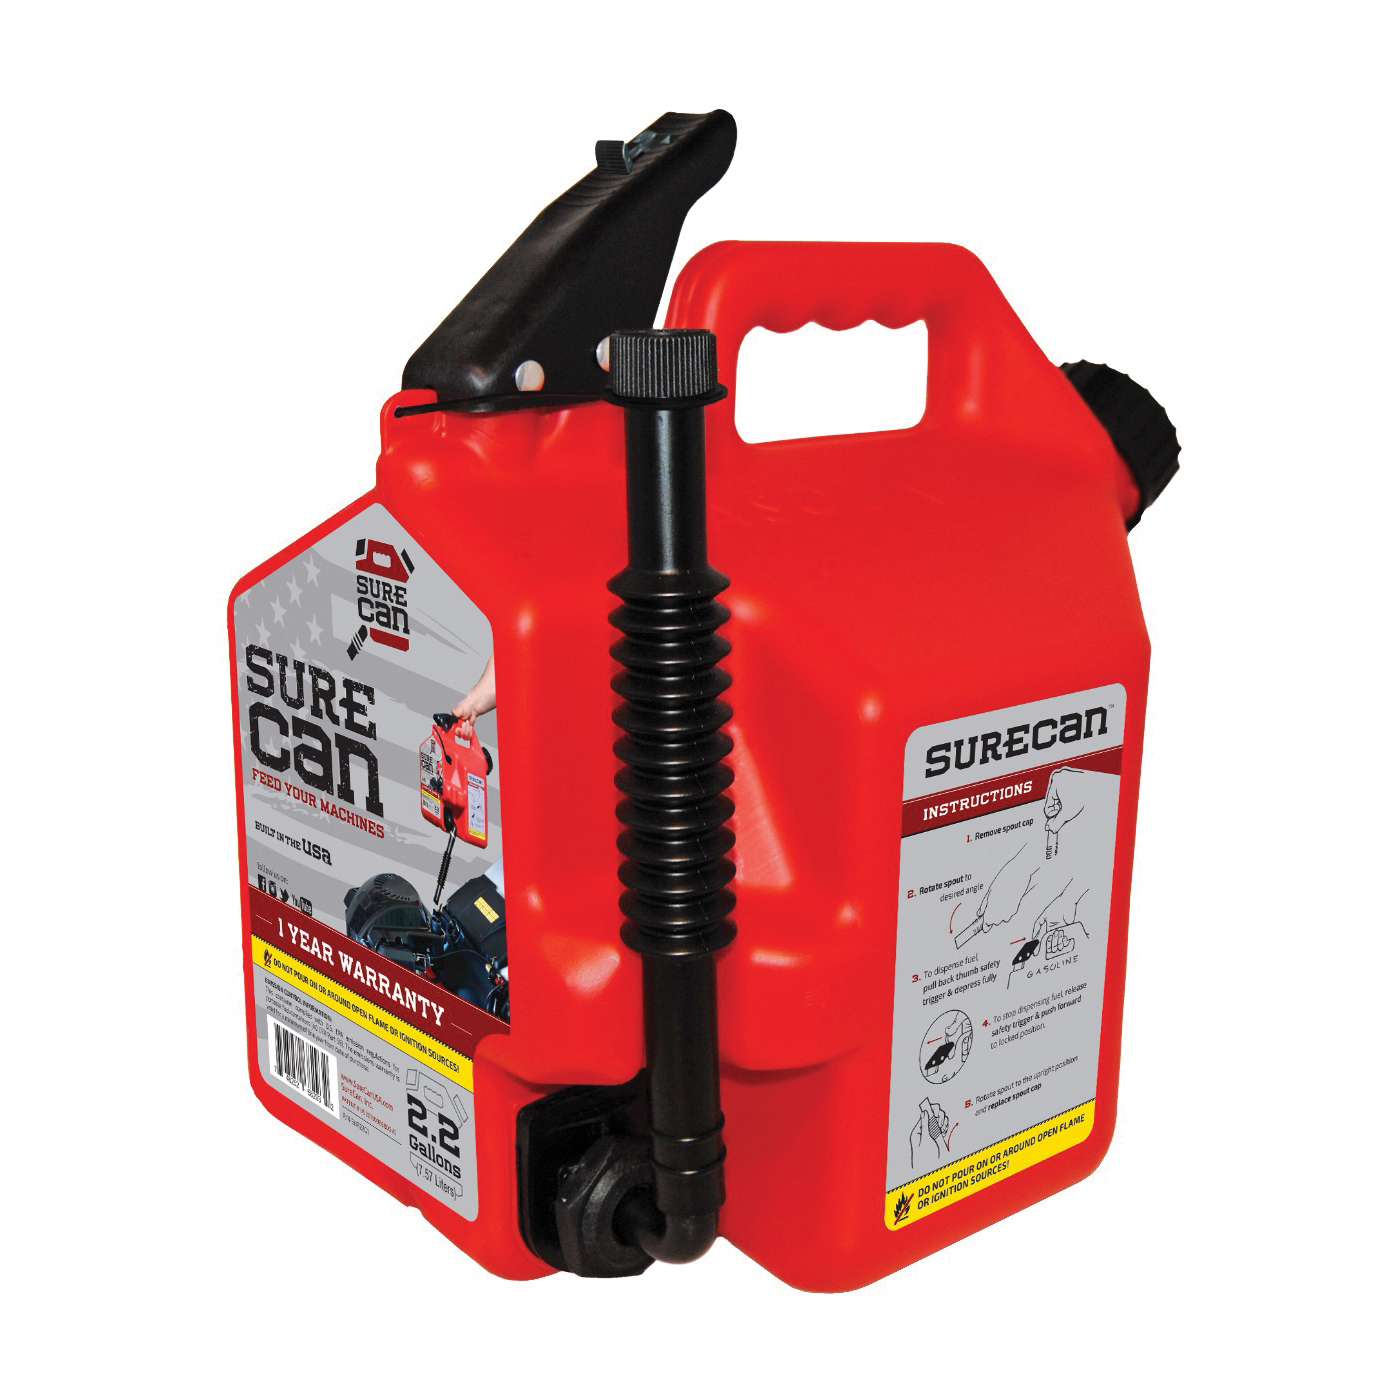 Picture of SUREcan SUR22G1 Gas Can, 2.2 gal Capacity, High-Density Polyethylene, Red